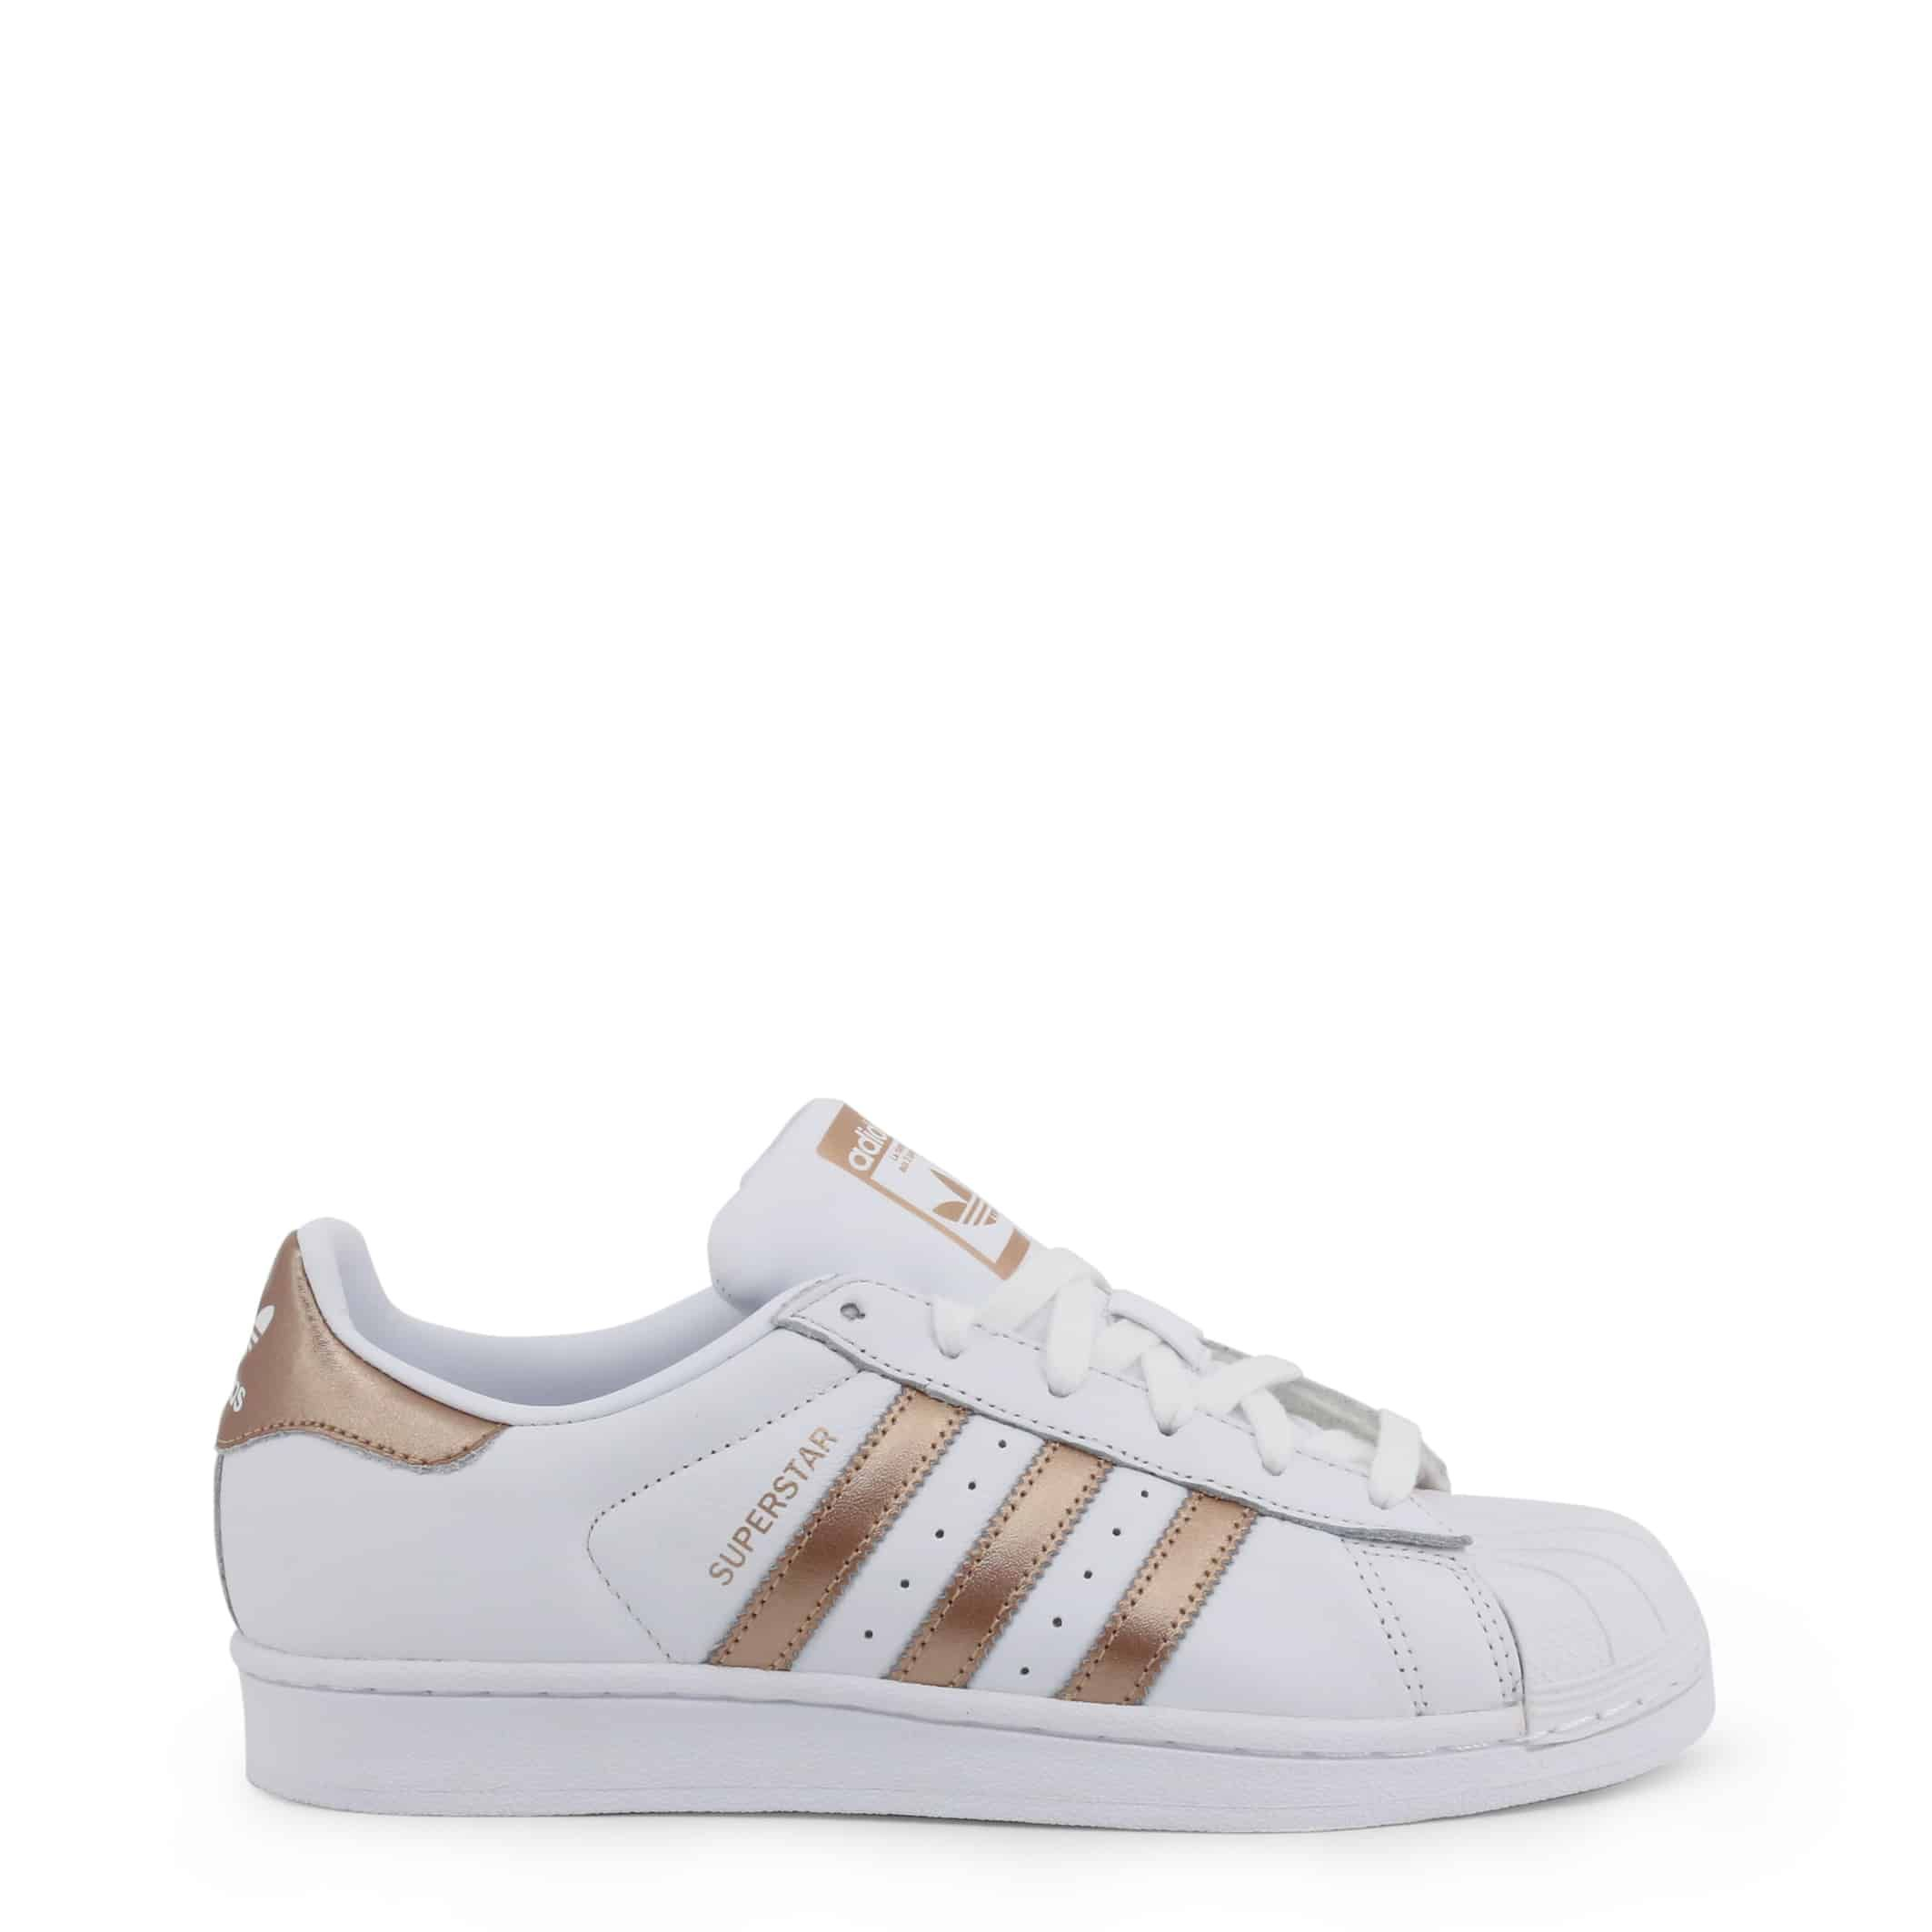 Sneakers Adidas – StanSmith